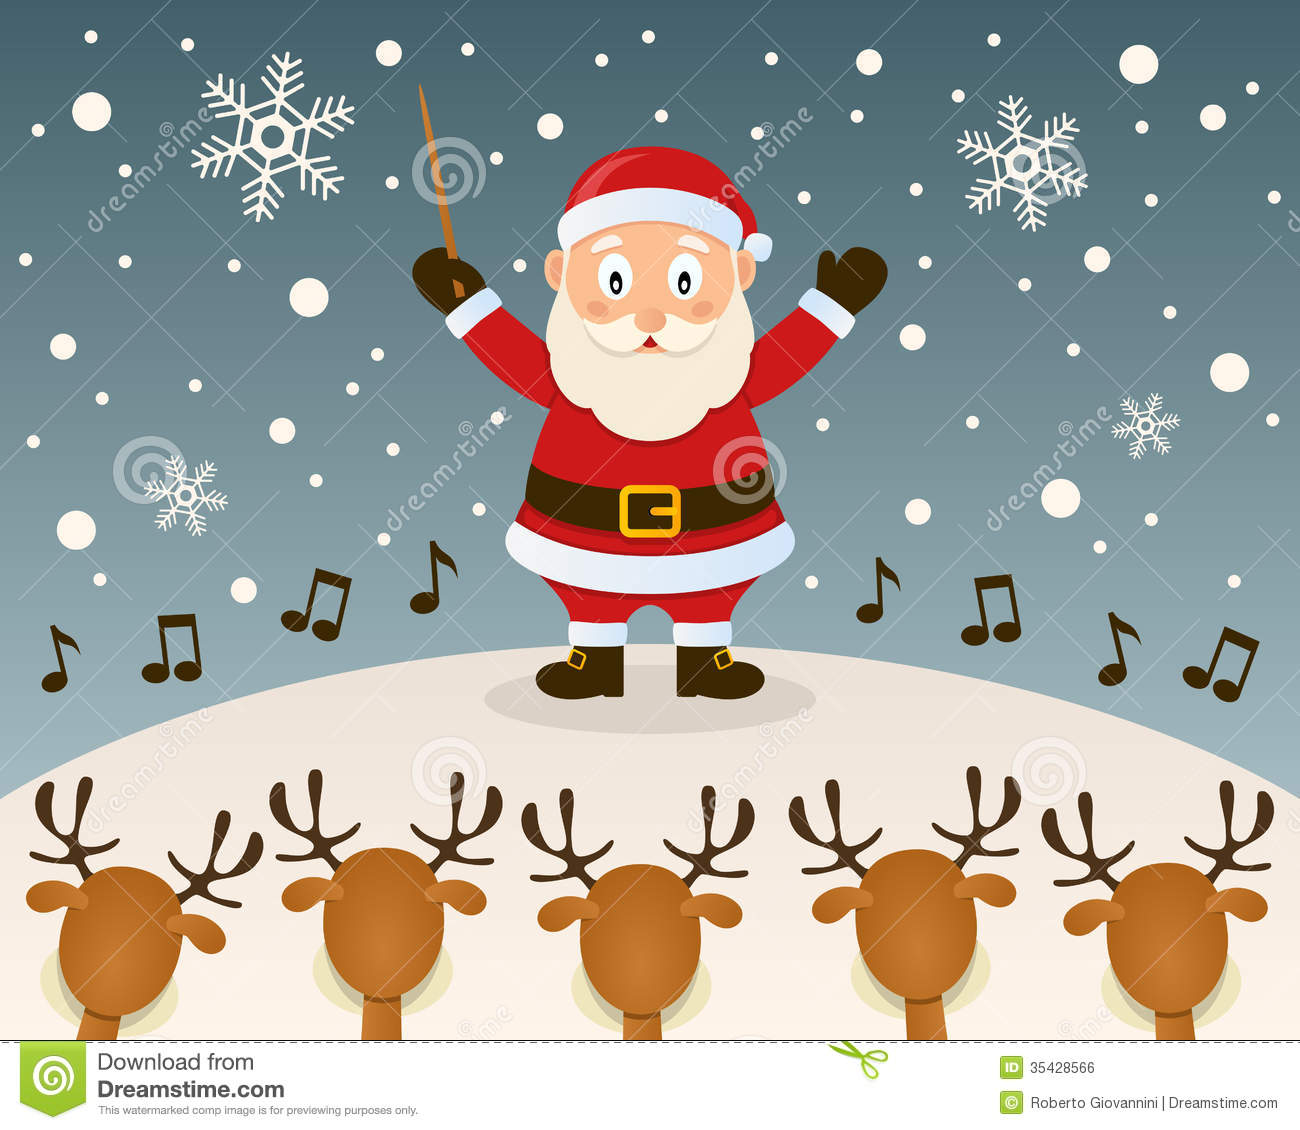 Santa Claus Orchestra Leader Stock Vector - Illustration of ...